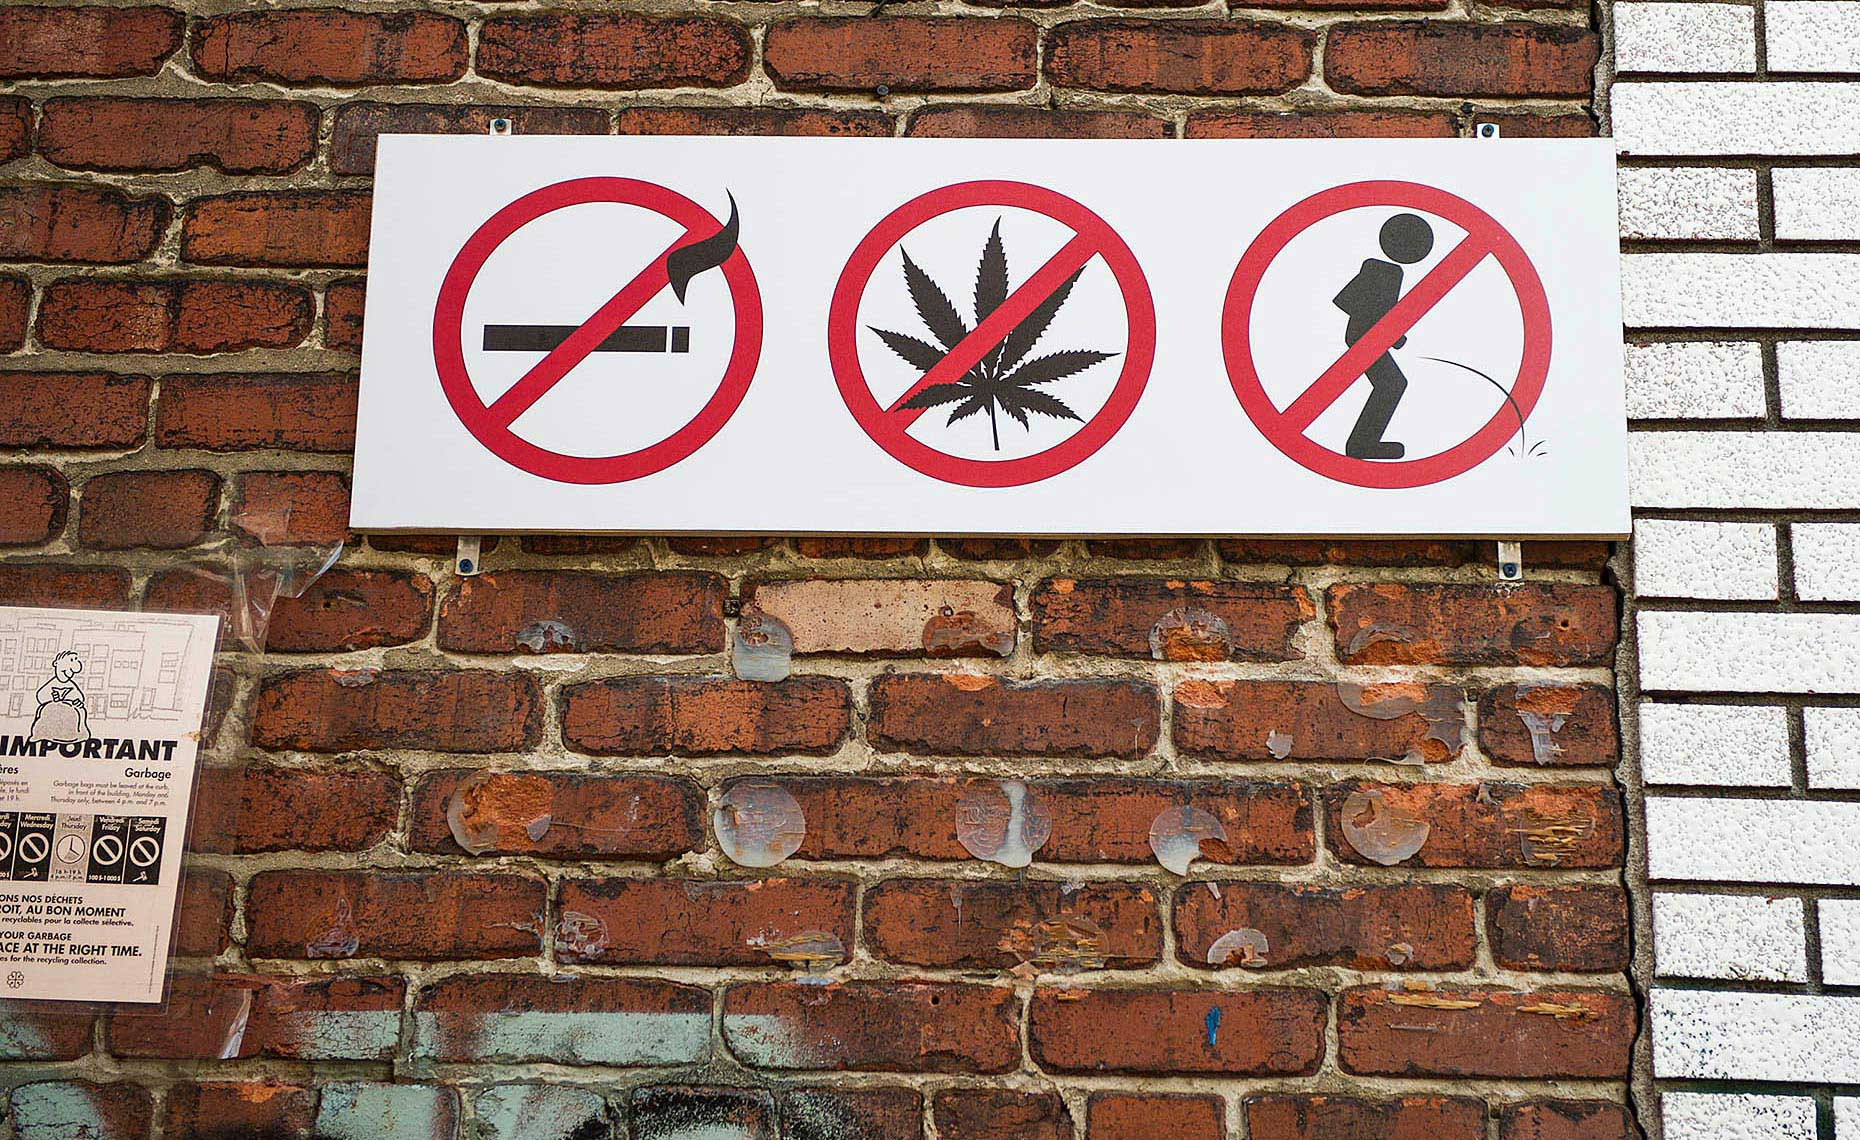 PAR_PhotoReporters_No-can-do-sign_Montreal_Canada